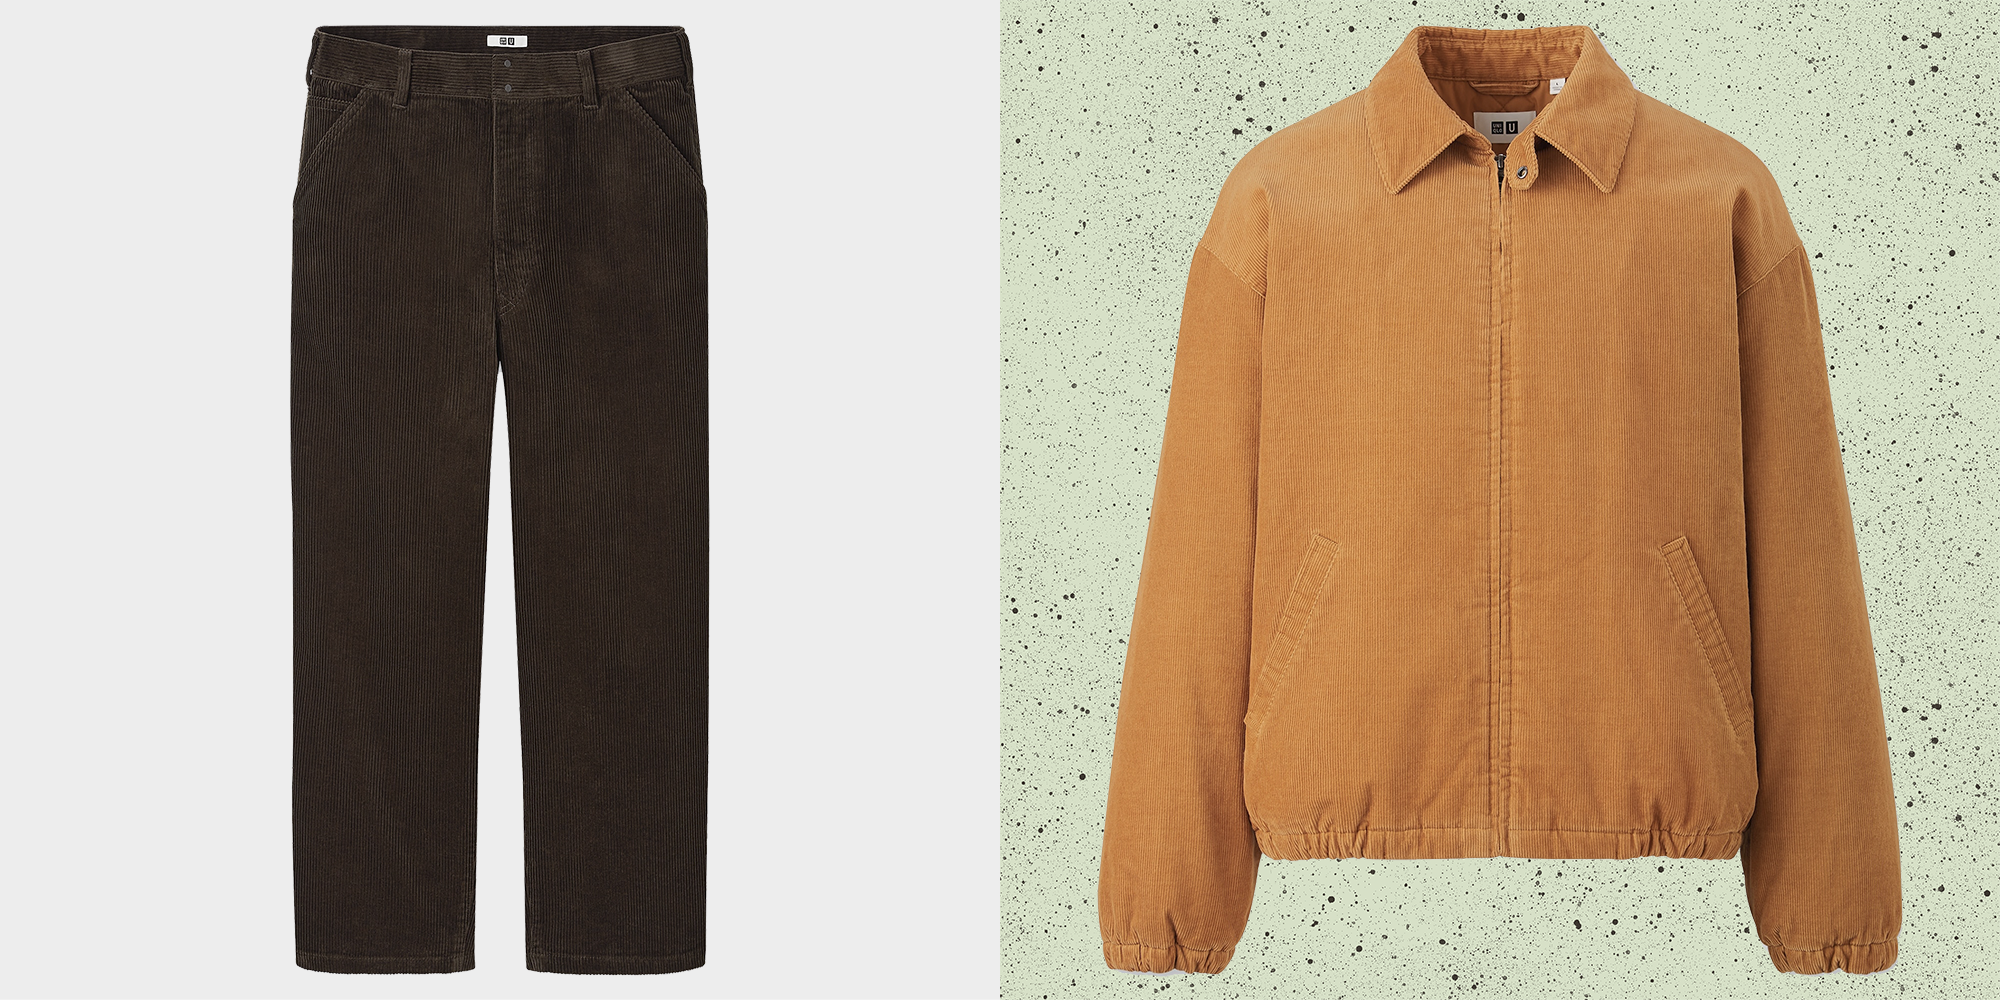 The Best Menswear To Buy From Uniqlo U's A/W Drop (Before It's Too Late)